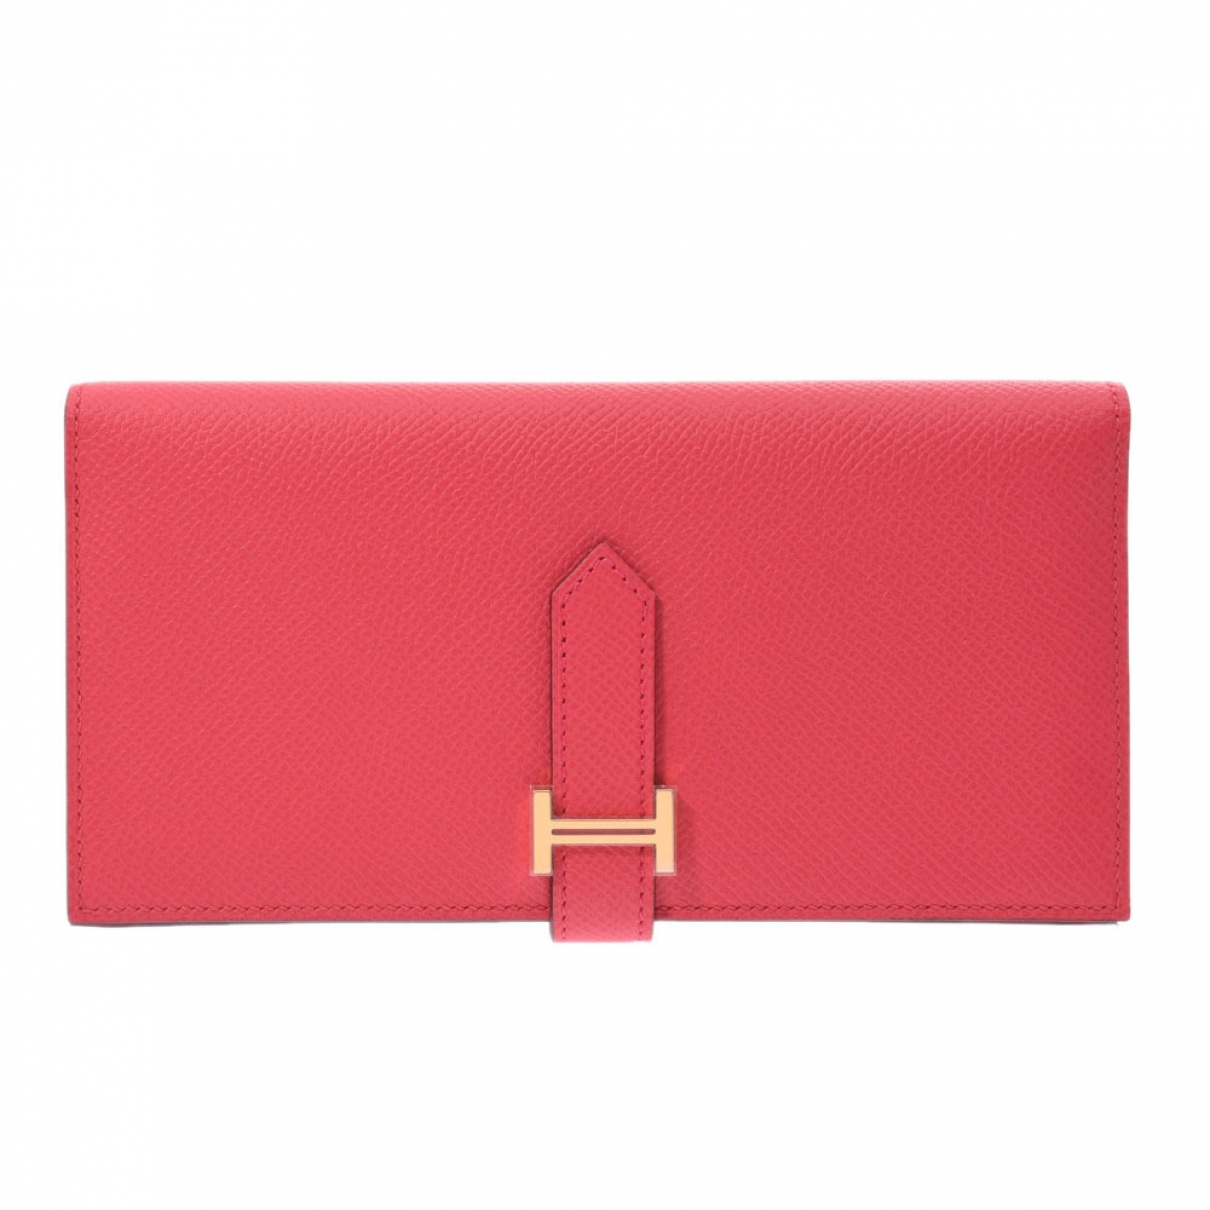 Hermès Béarn Pink Leather wallet for Women \N